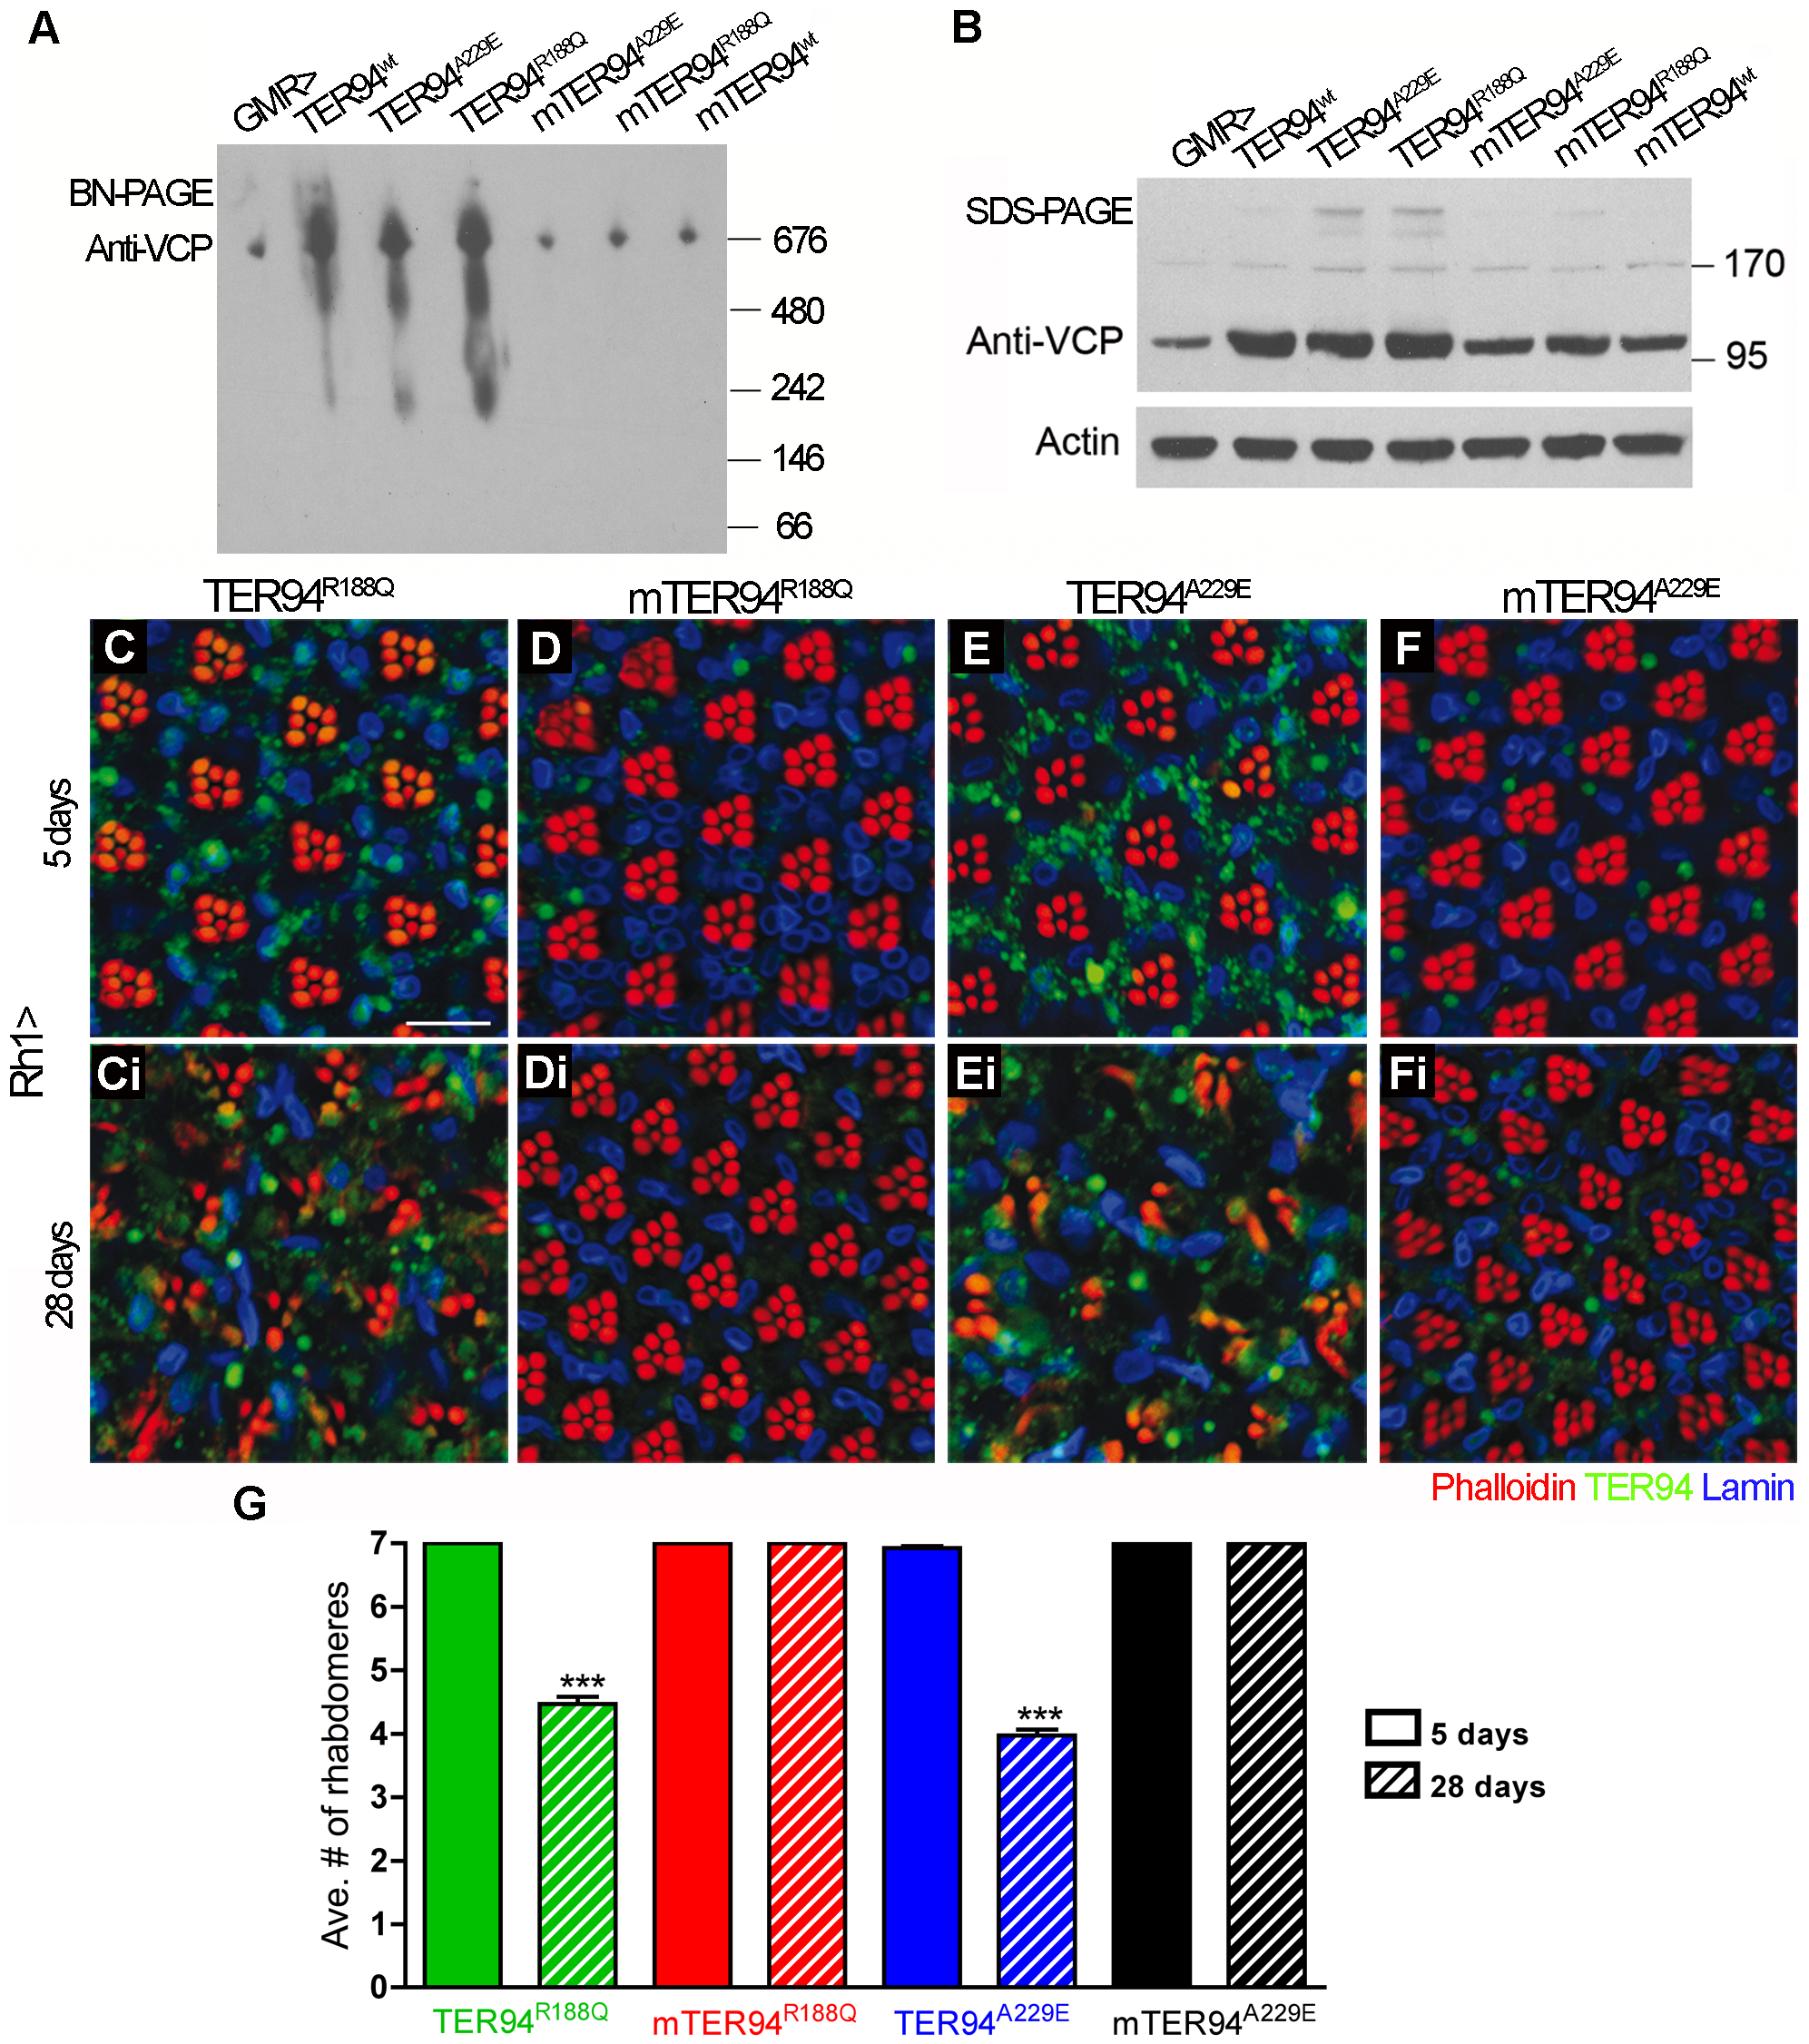 Formation of hexamers is crucial for the cytotoxicity of disease proteins.